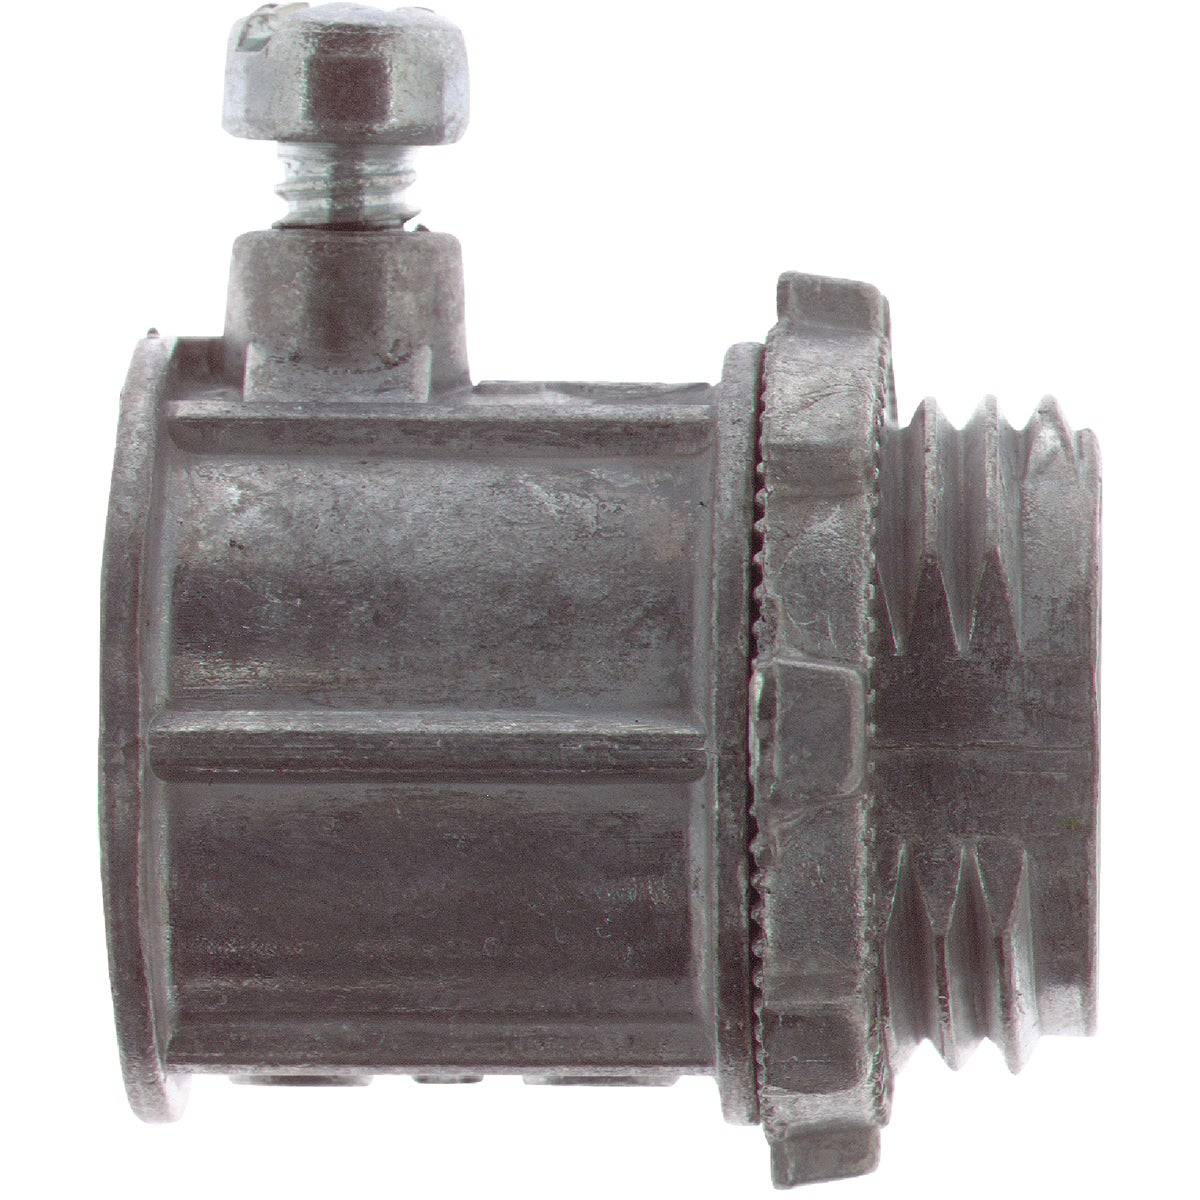 "3/4"" EMT CONNECTOR - TC222SC1 by Thomas & Betts"